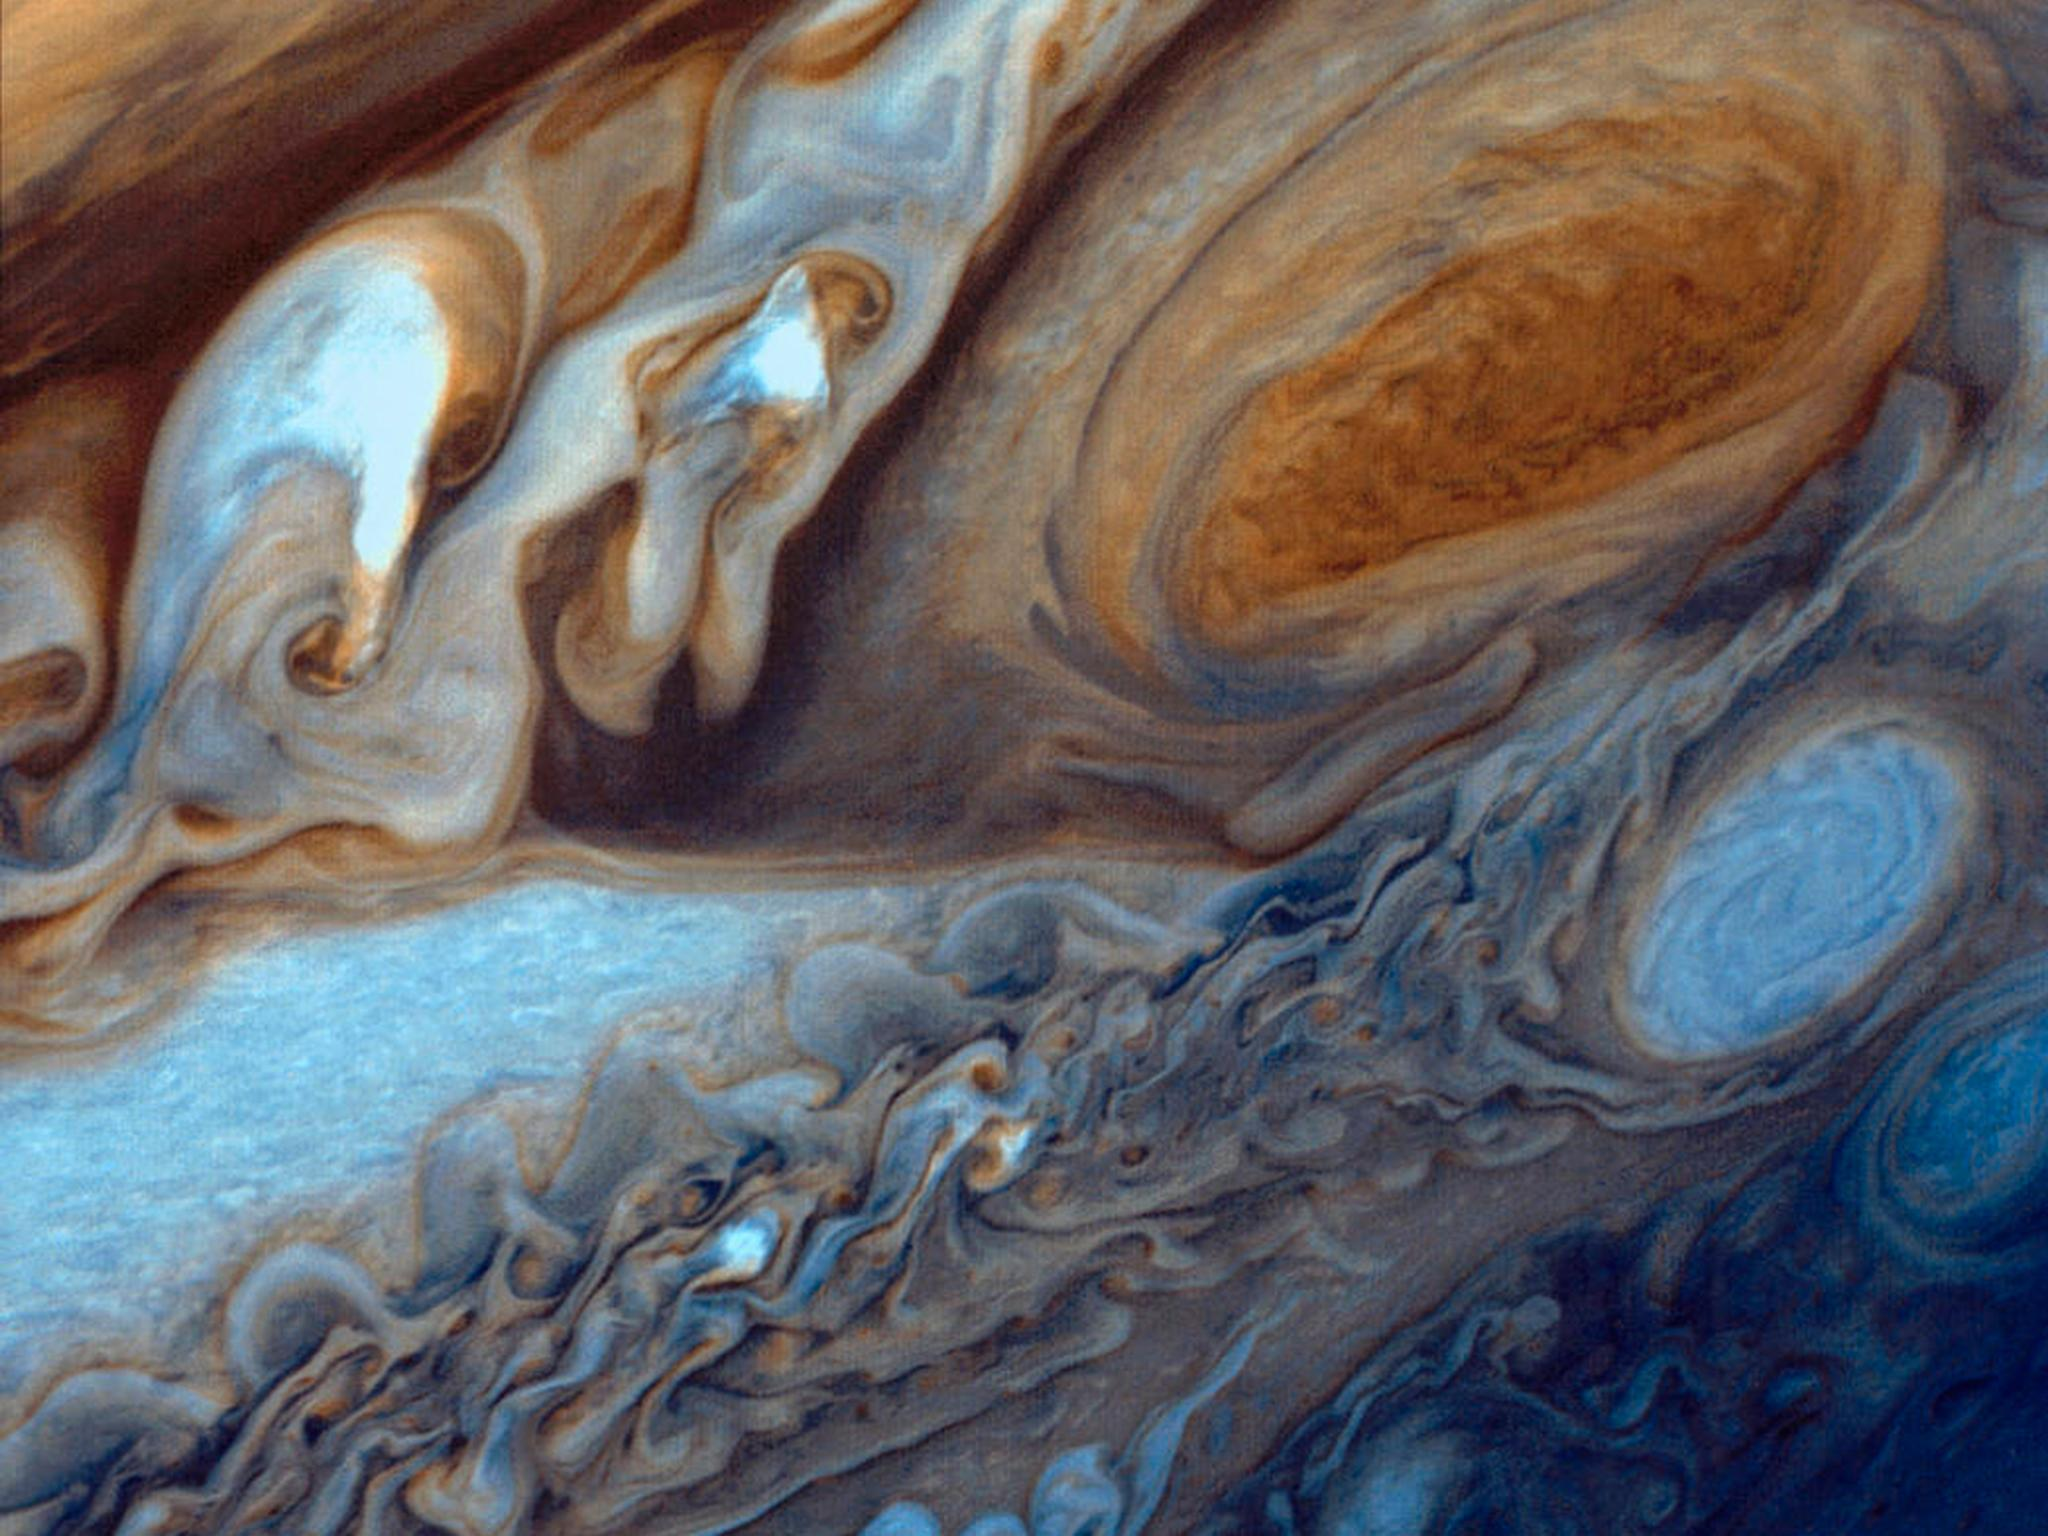 Jupiter's Great Red Spot Viewed by Voyager I